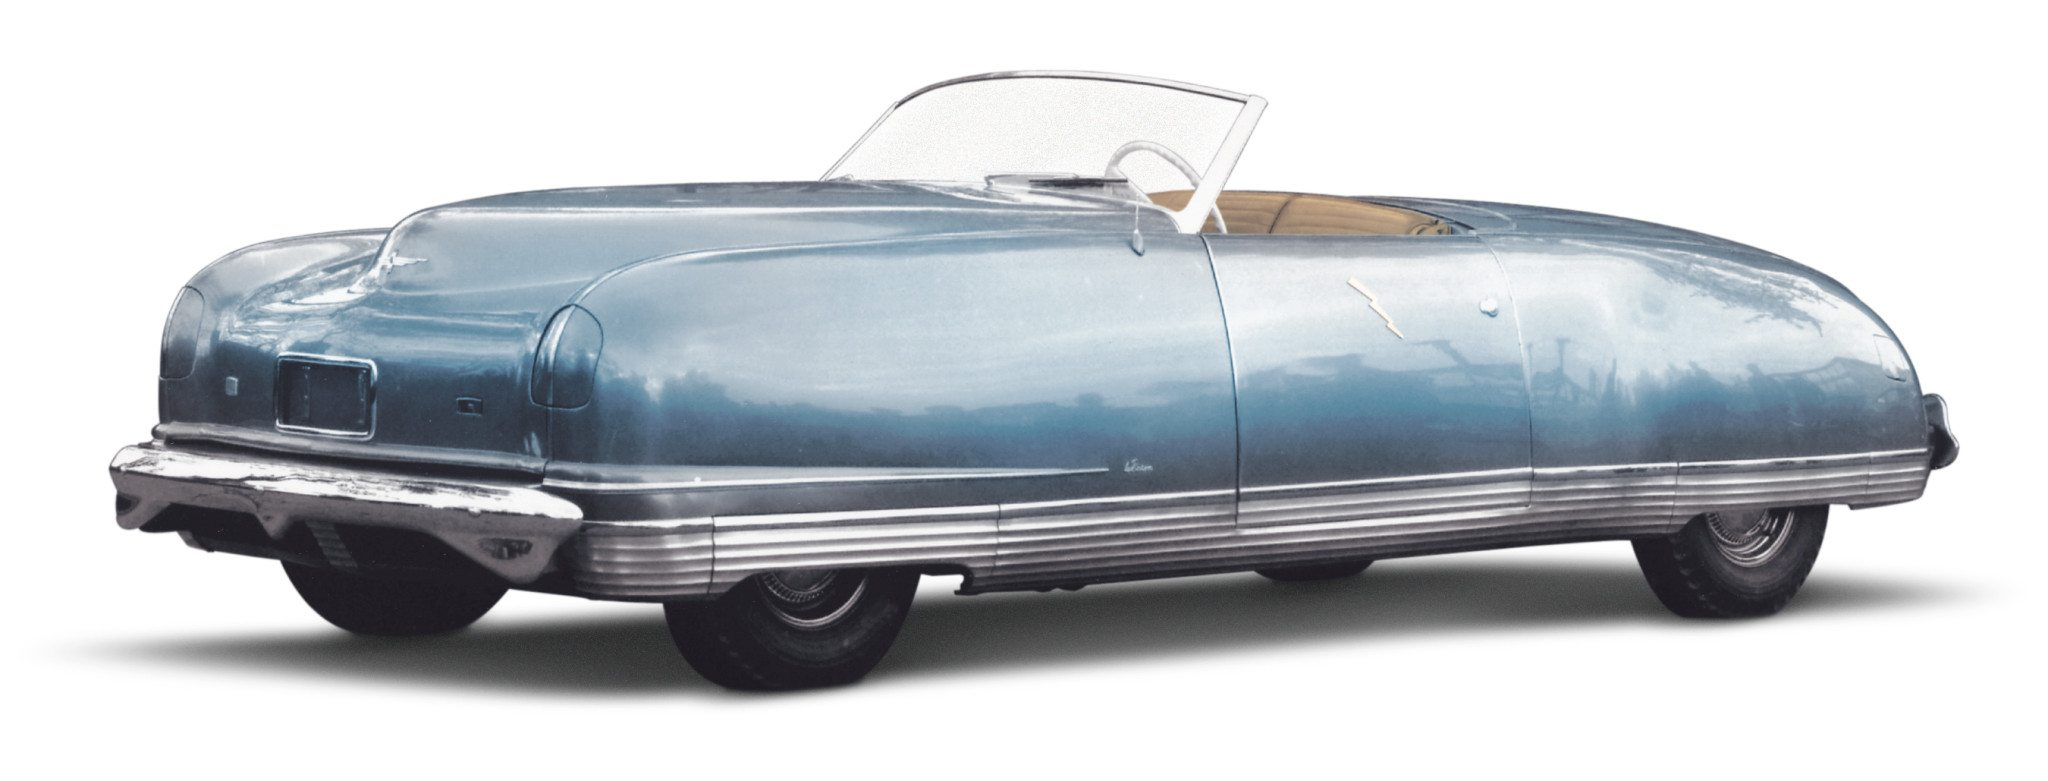 1941 Chrysler Thunderbolt Hardtop Convertible